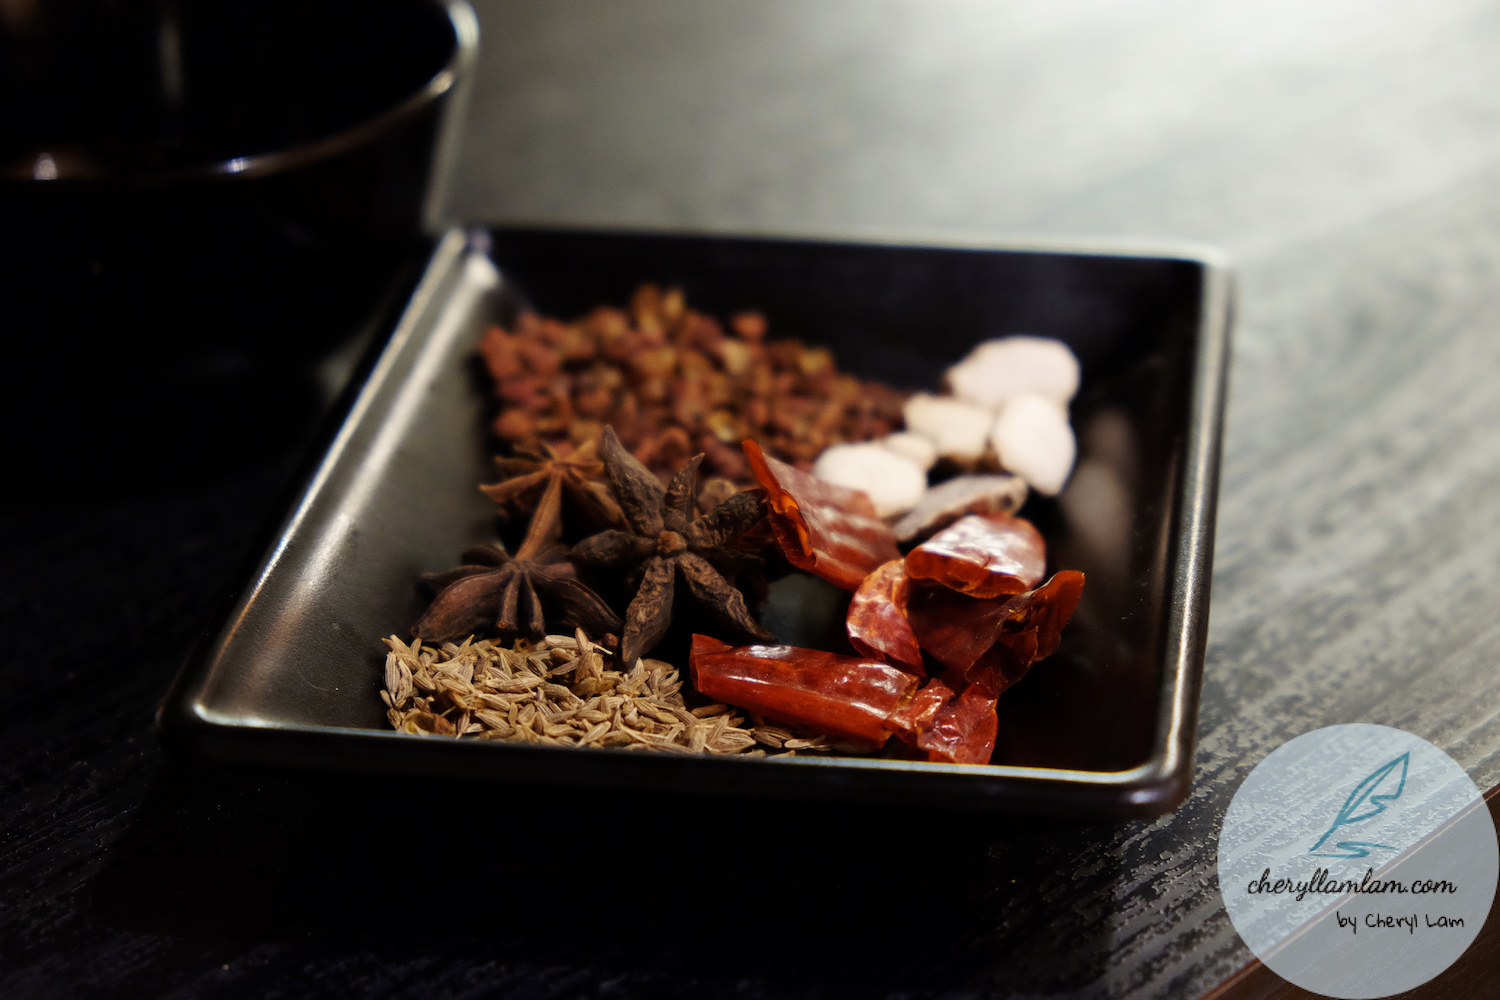 The five main ingredients to make this delicious dry pot : star anise (八角), dried chilli (辣椒干), fennel (茴香), pepper (花椒), Kaempferia galanga Linn or simply known as sand ginger (三奈/沙姜).